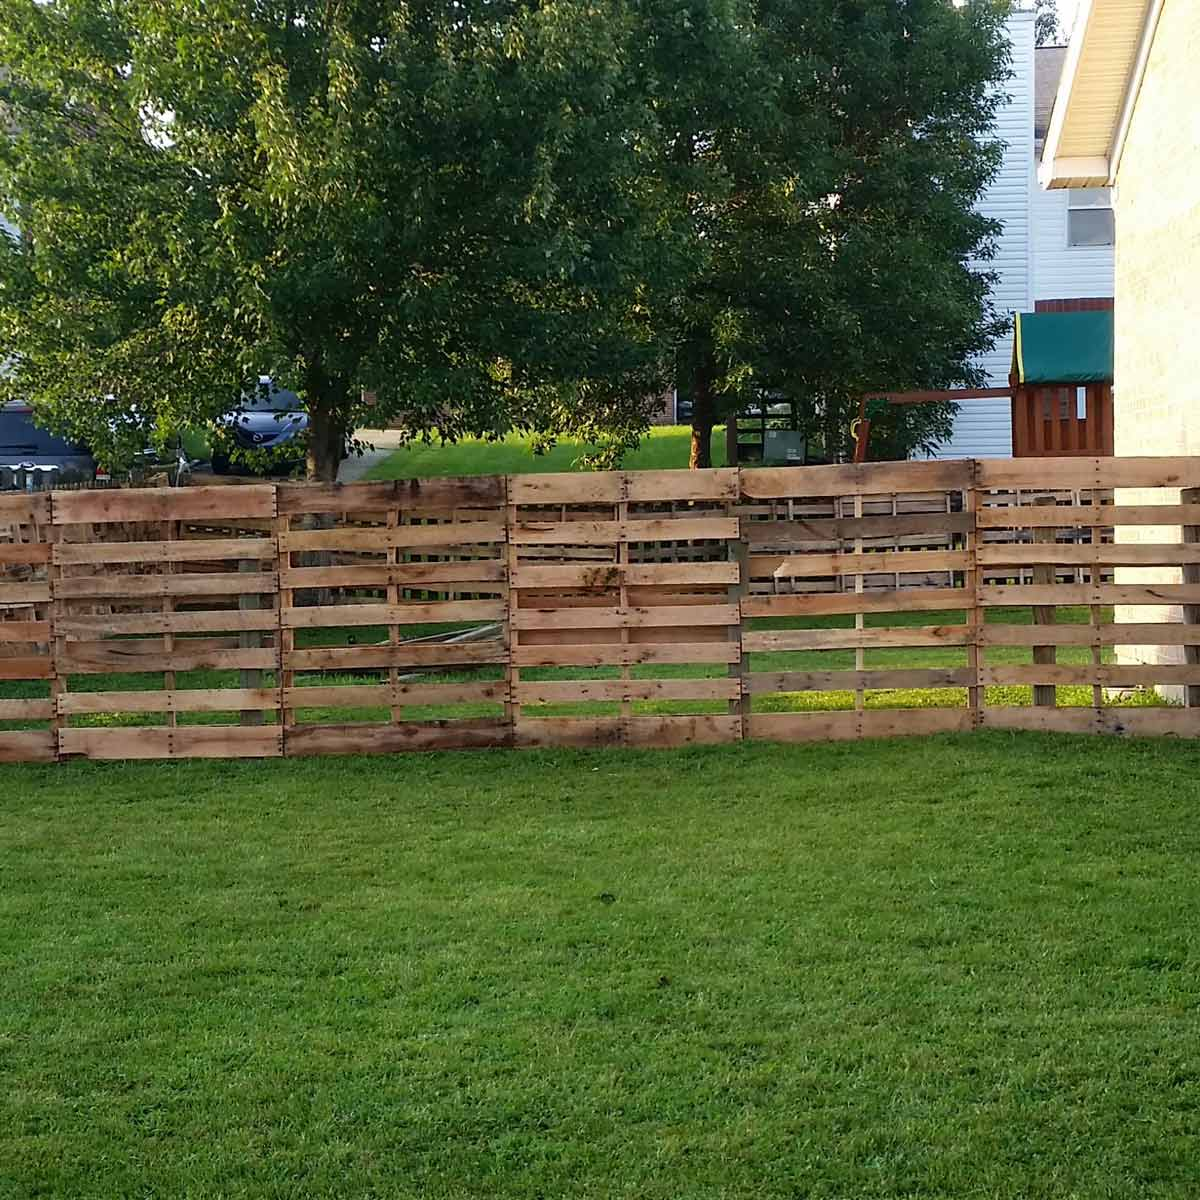 Pallet fence